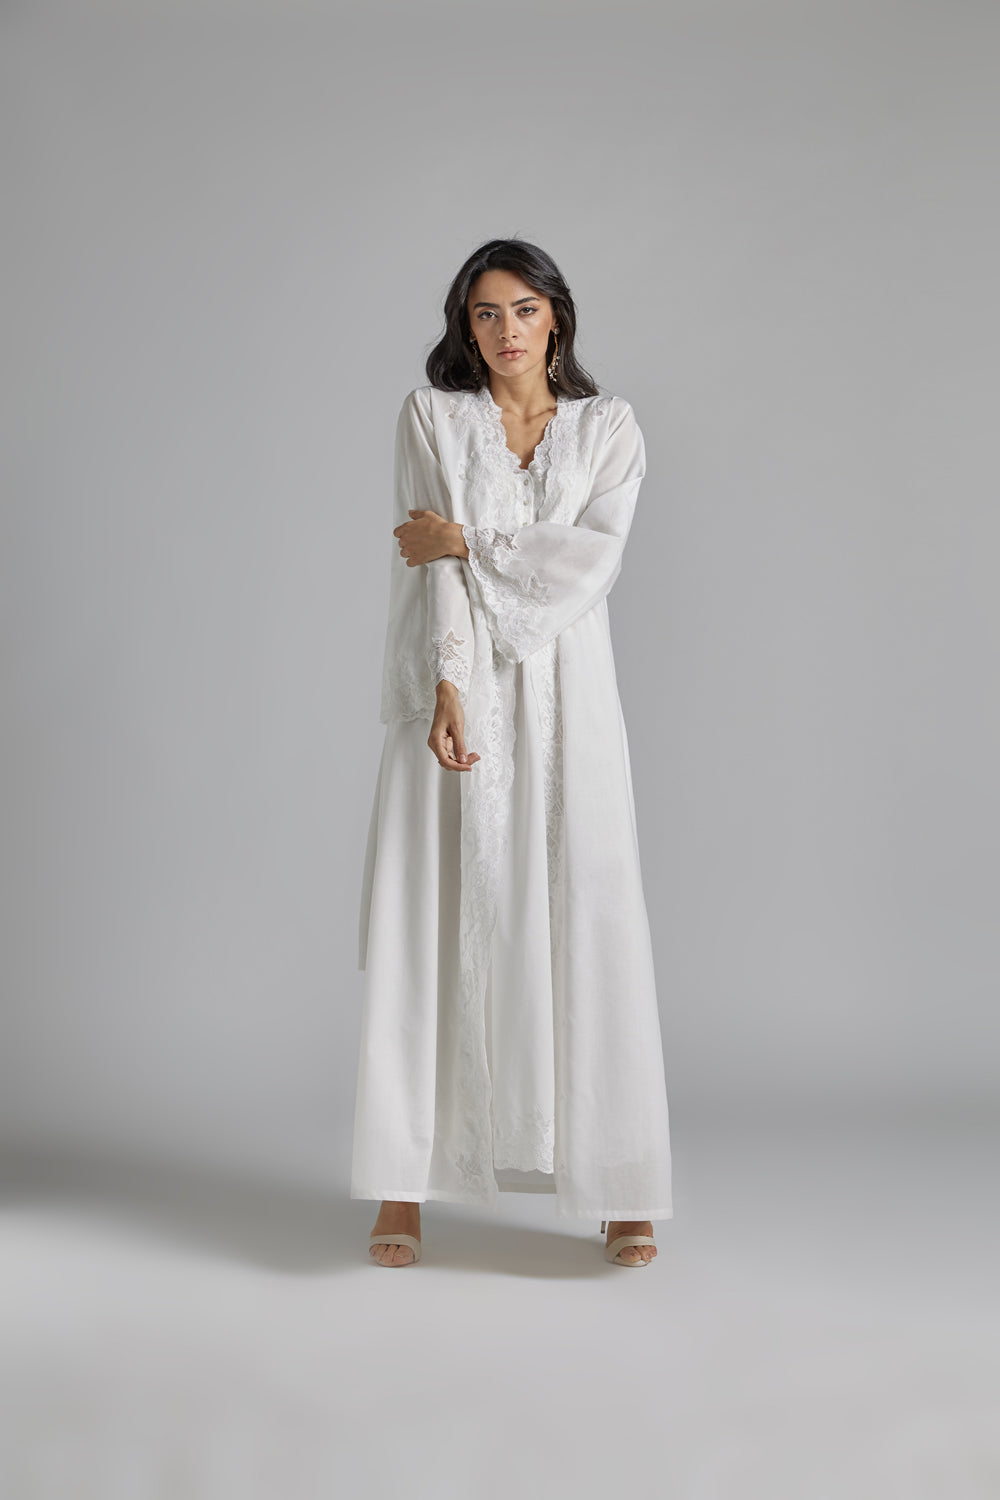 Cotton Vual Off White Robe Set - Reina